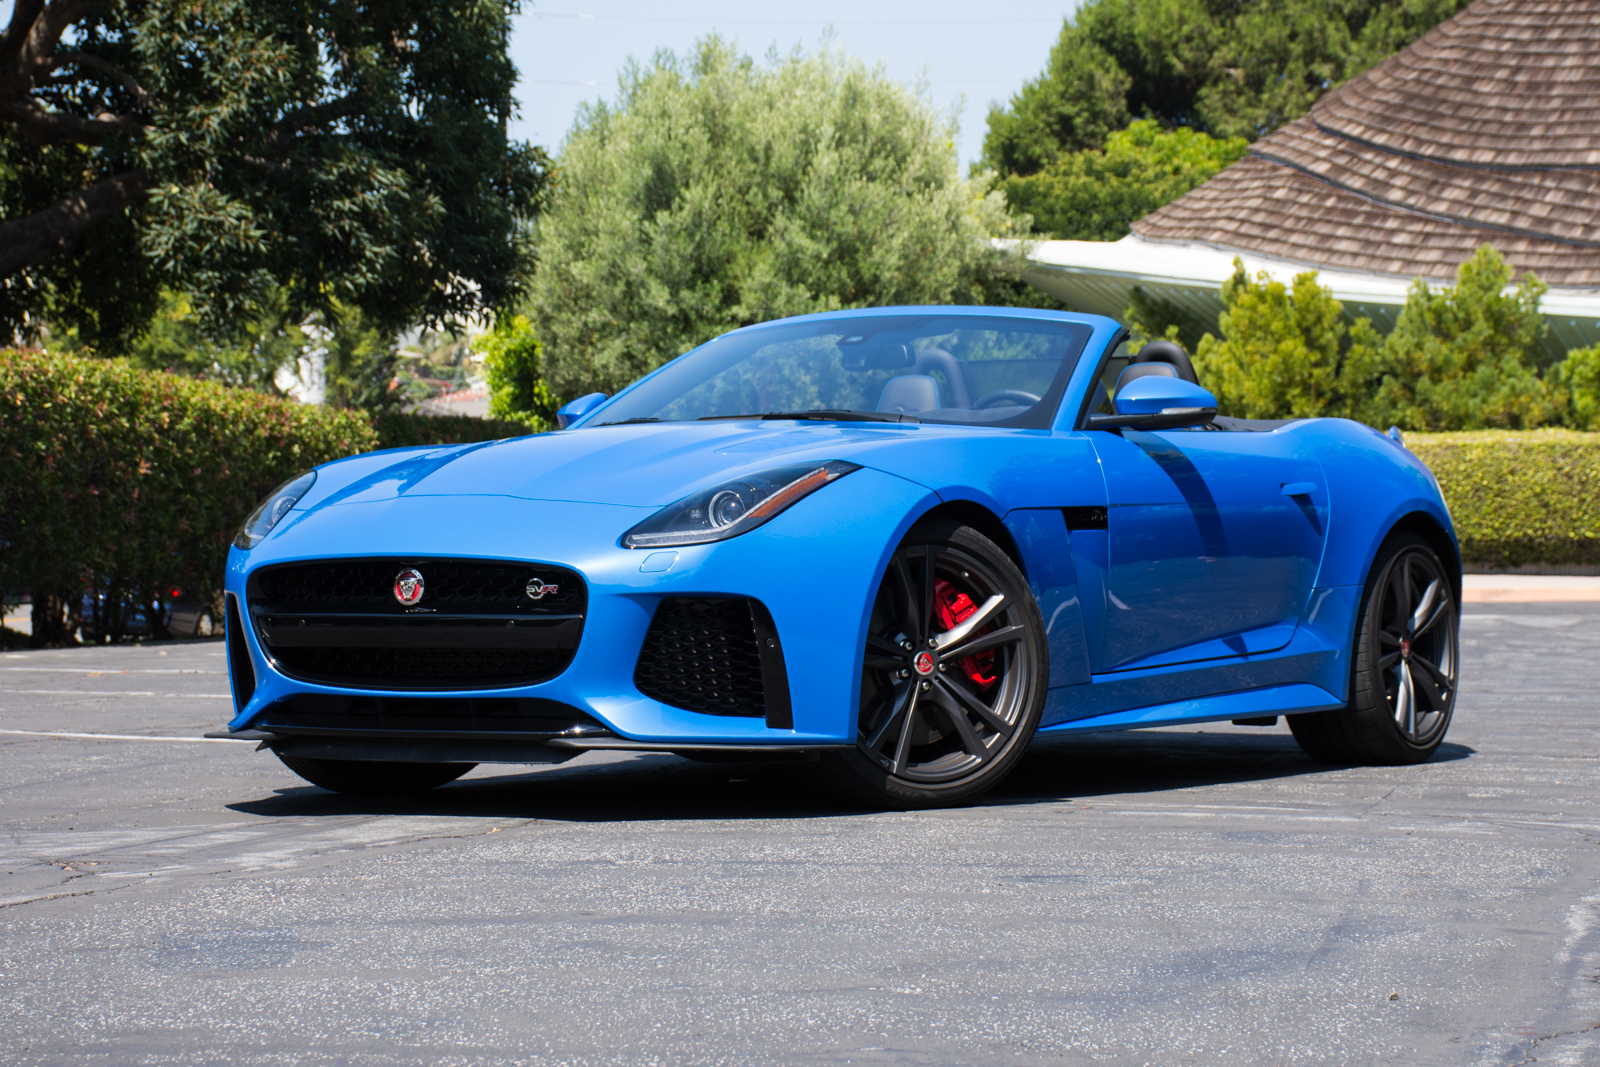 Jaguar F Type Convertible >> Drivin' L.A. with Andrew Chen: 2017 Jaguar F-Type SVR Convertible | FactoryTwoFour